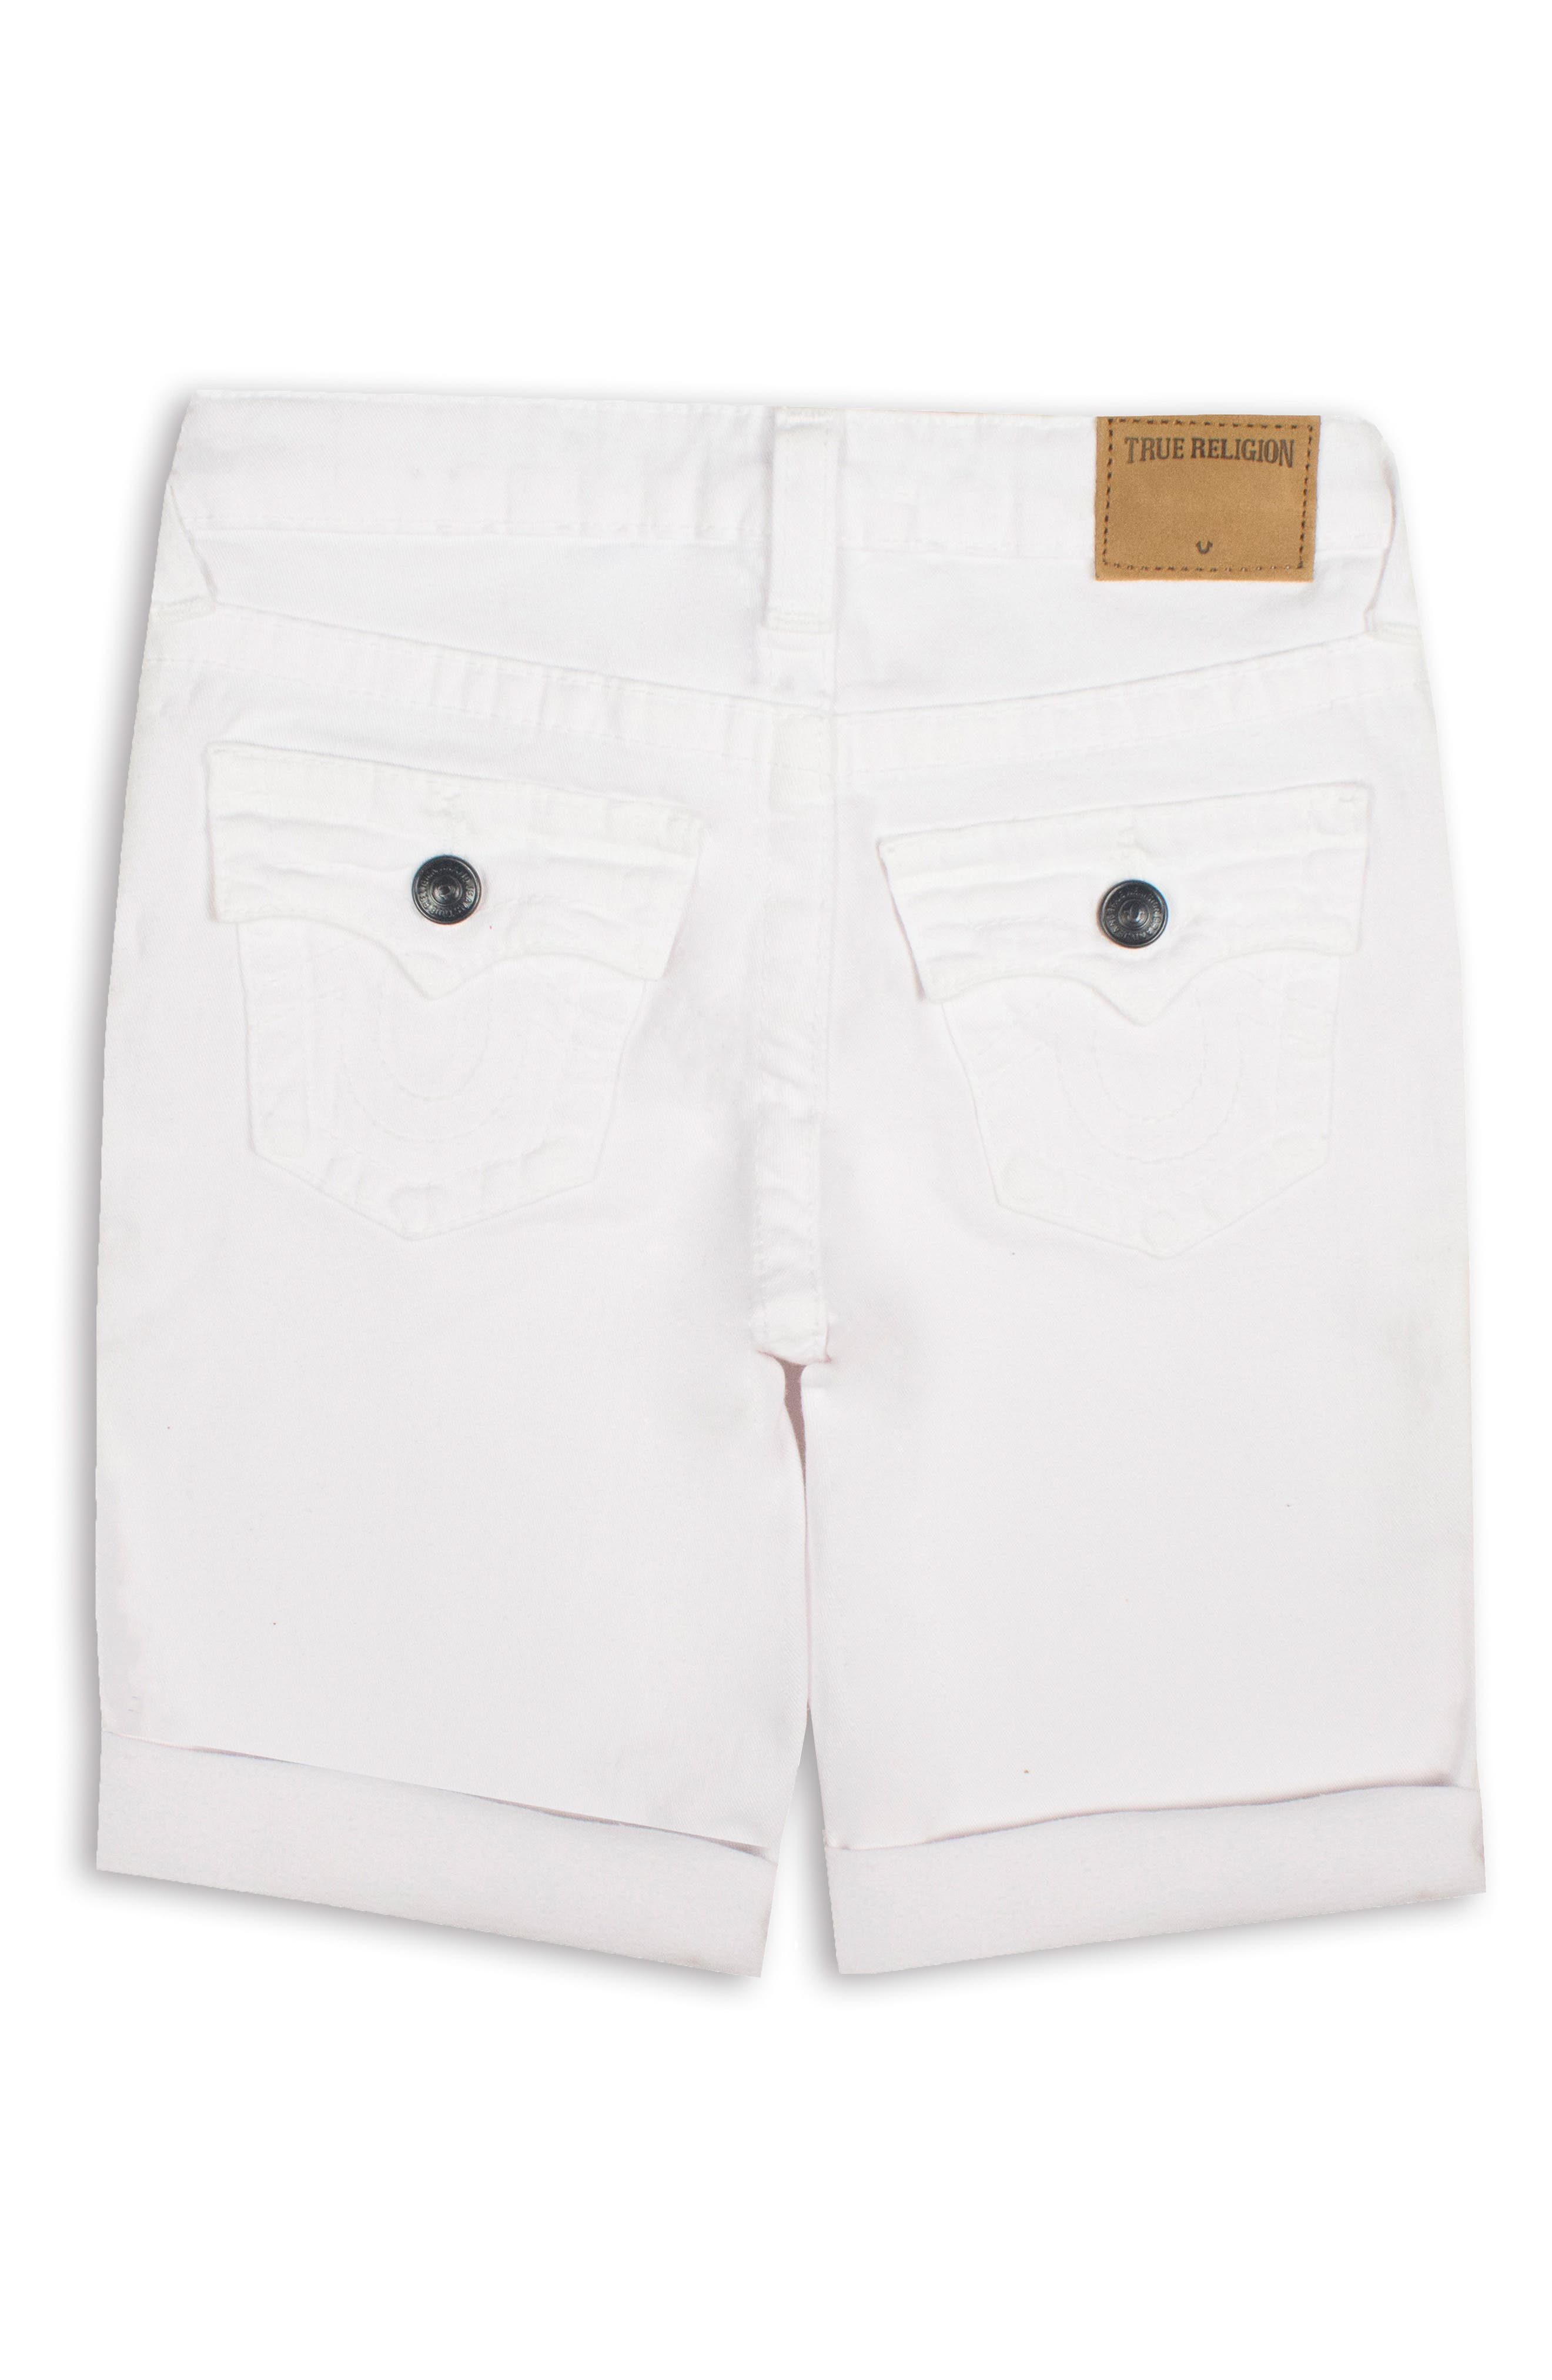 Geno Denim Shorts,                         Main,                         color, 100